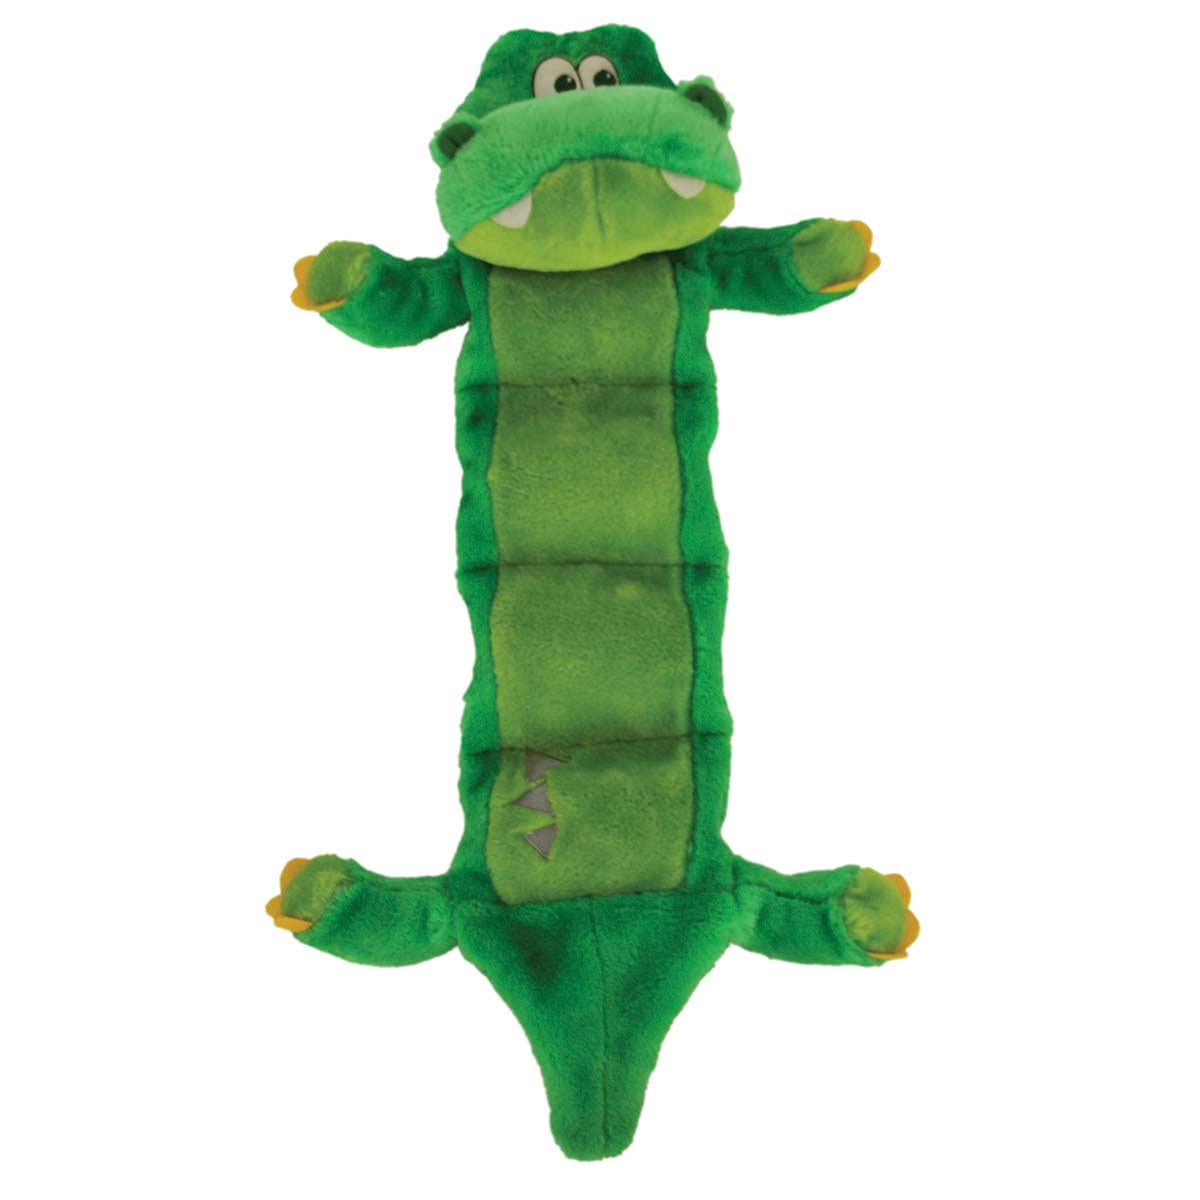 Outward Hound Squeaker Palz Gator Toy for Dogs